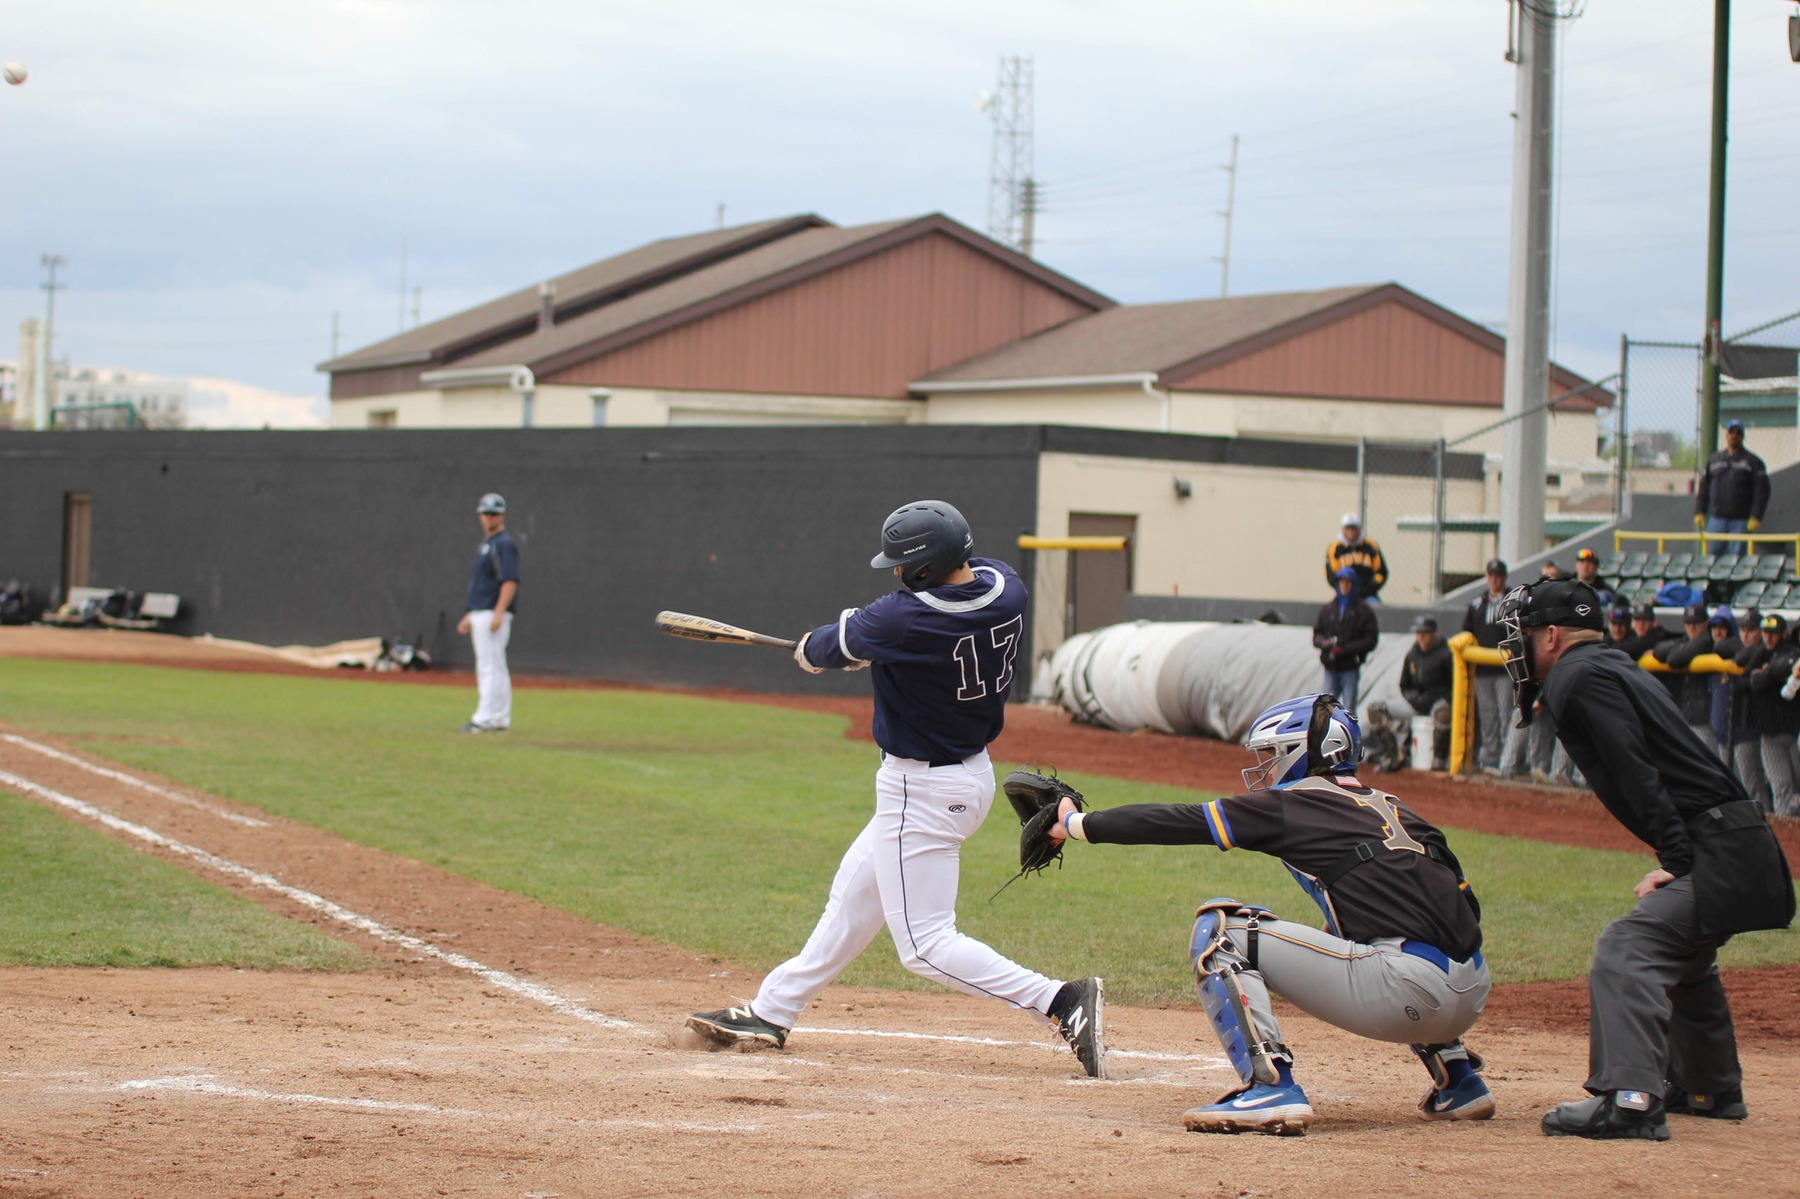 DMACC baseball team drops doubleheader to Iowa Western